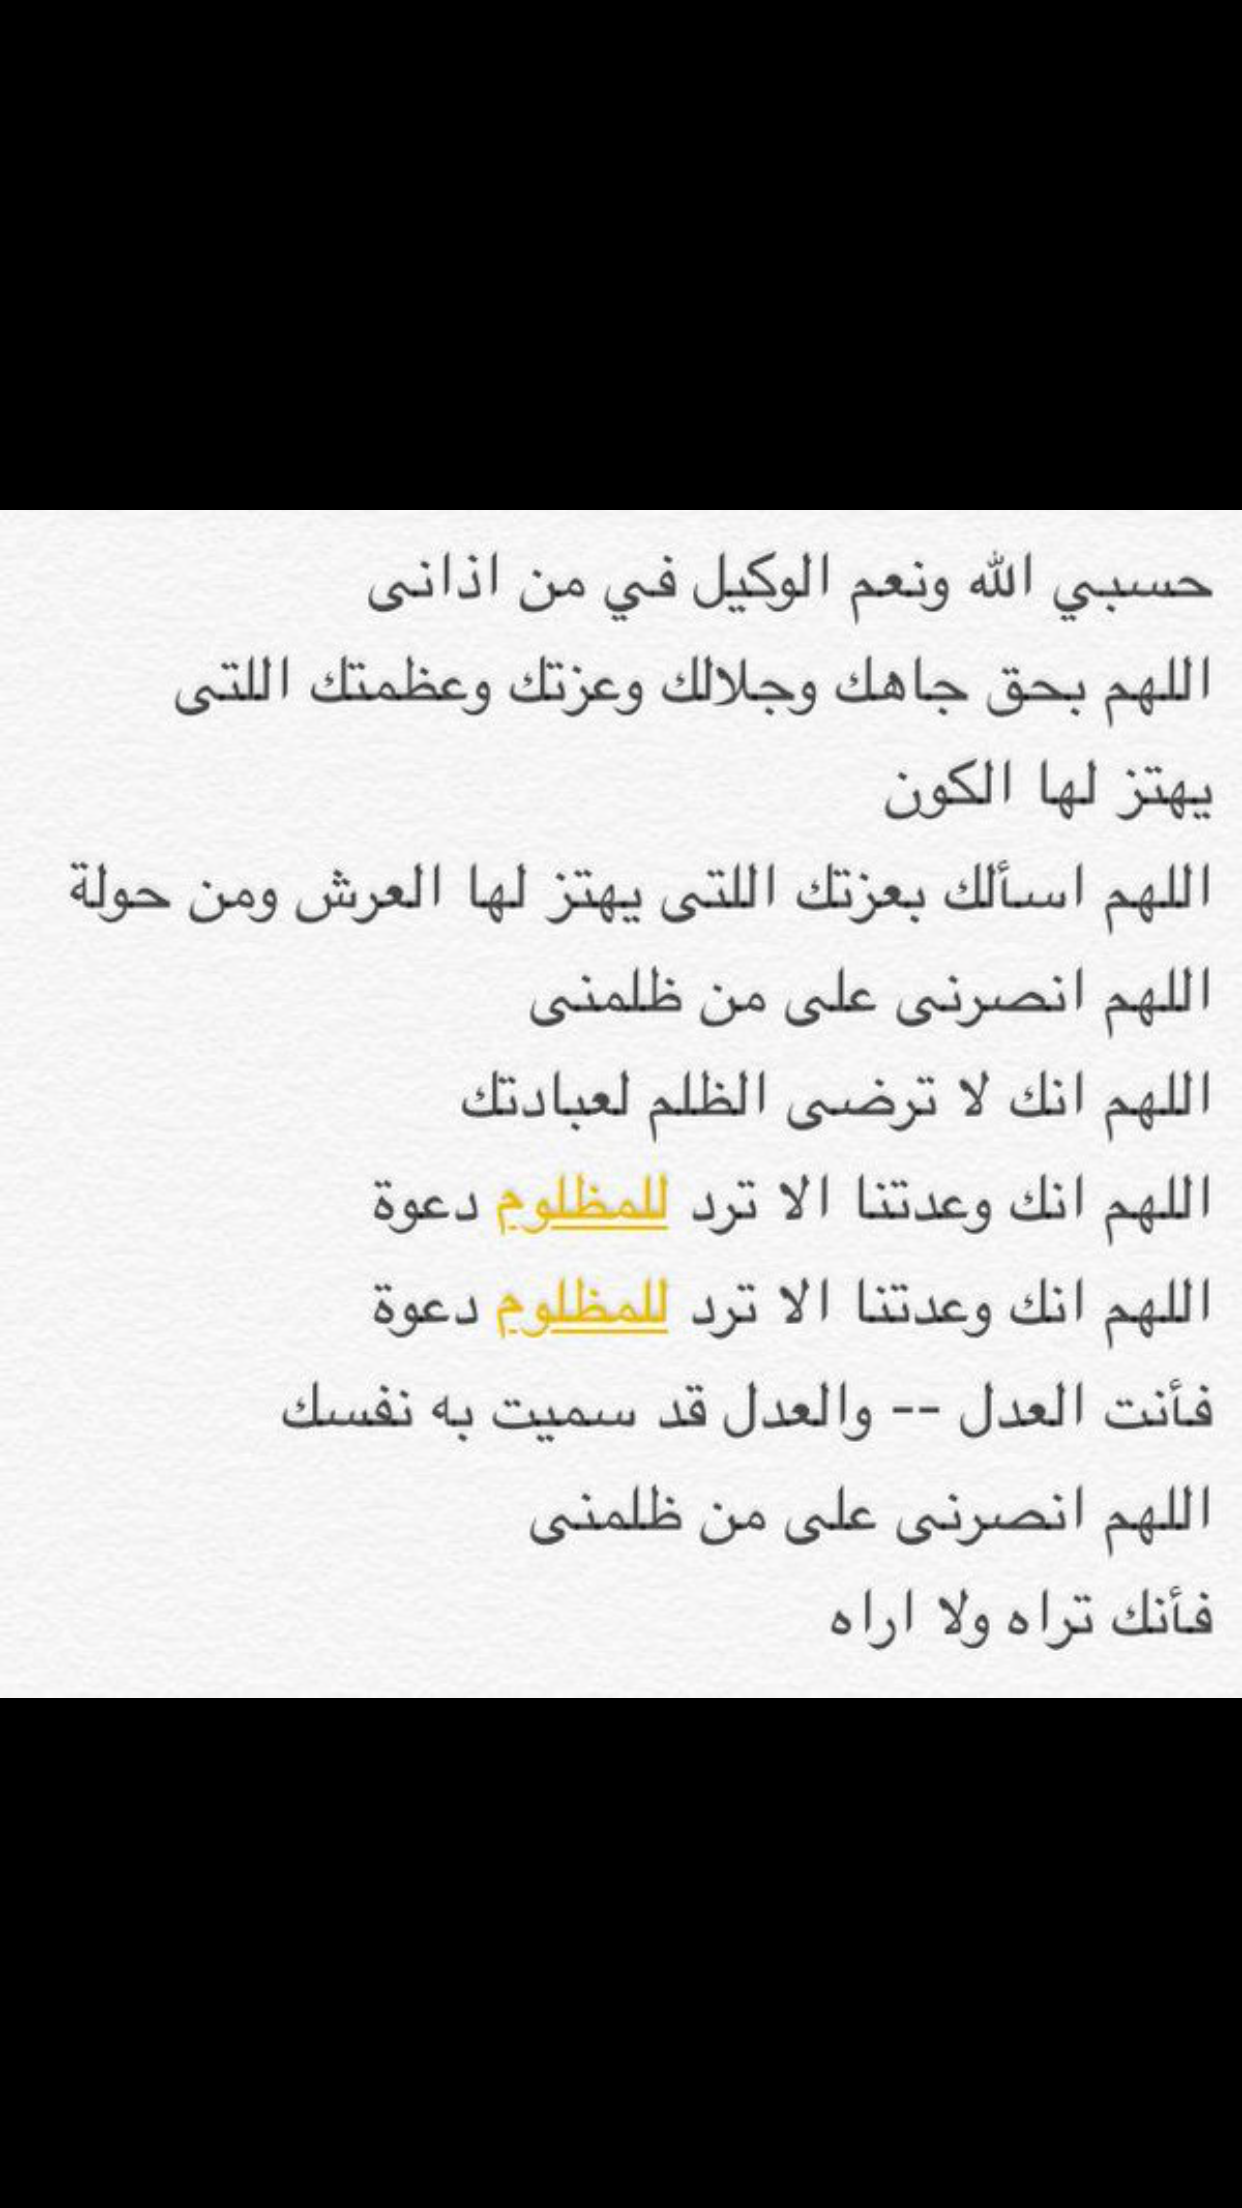 Pin By Hamida Kastali On اذكارات Thoughts Quotes Positive Notes Arabic Quotes